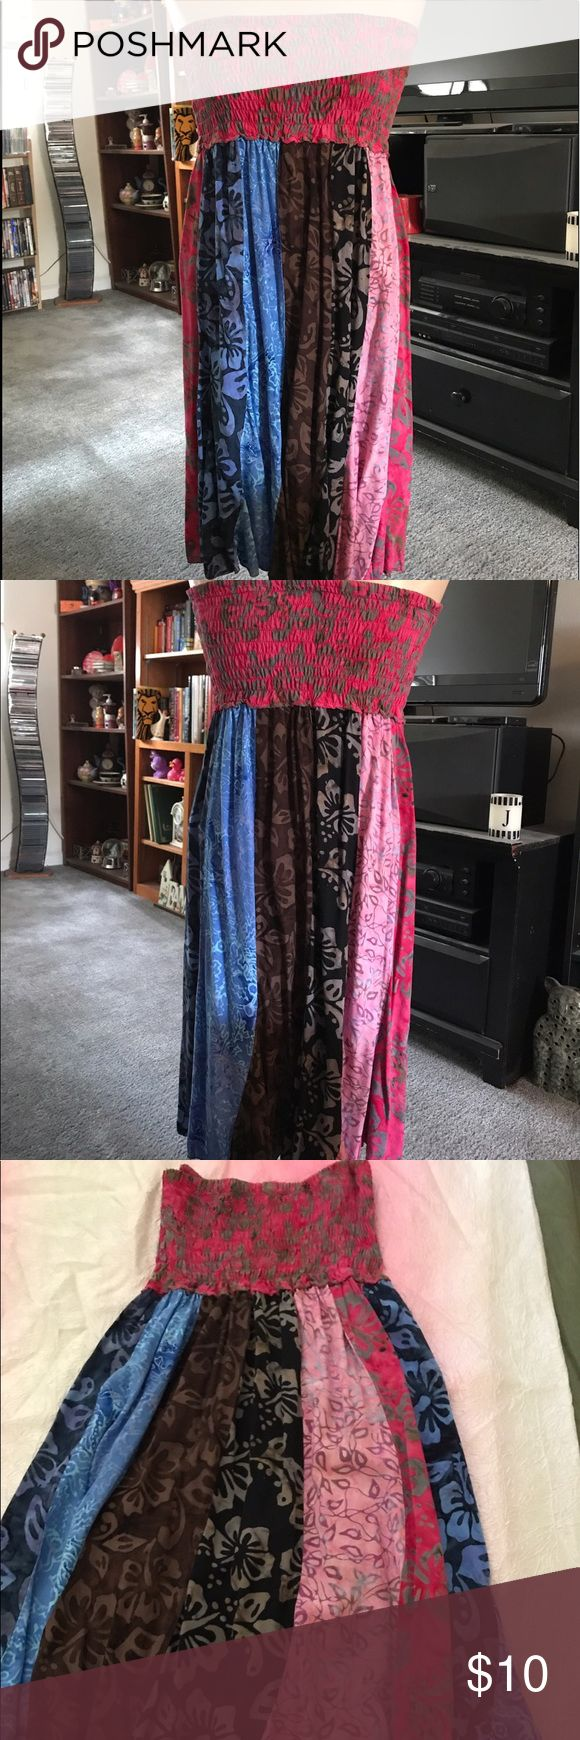 A cute strapless sundress with a floral pattern Strapless sundress great for going out or to the beach New never been worn Hawaiian Style Dresses Strapless